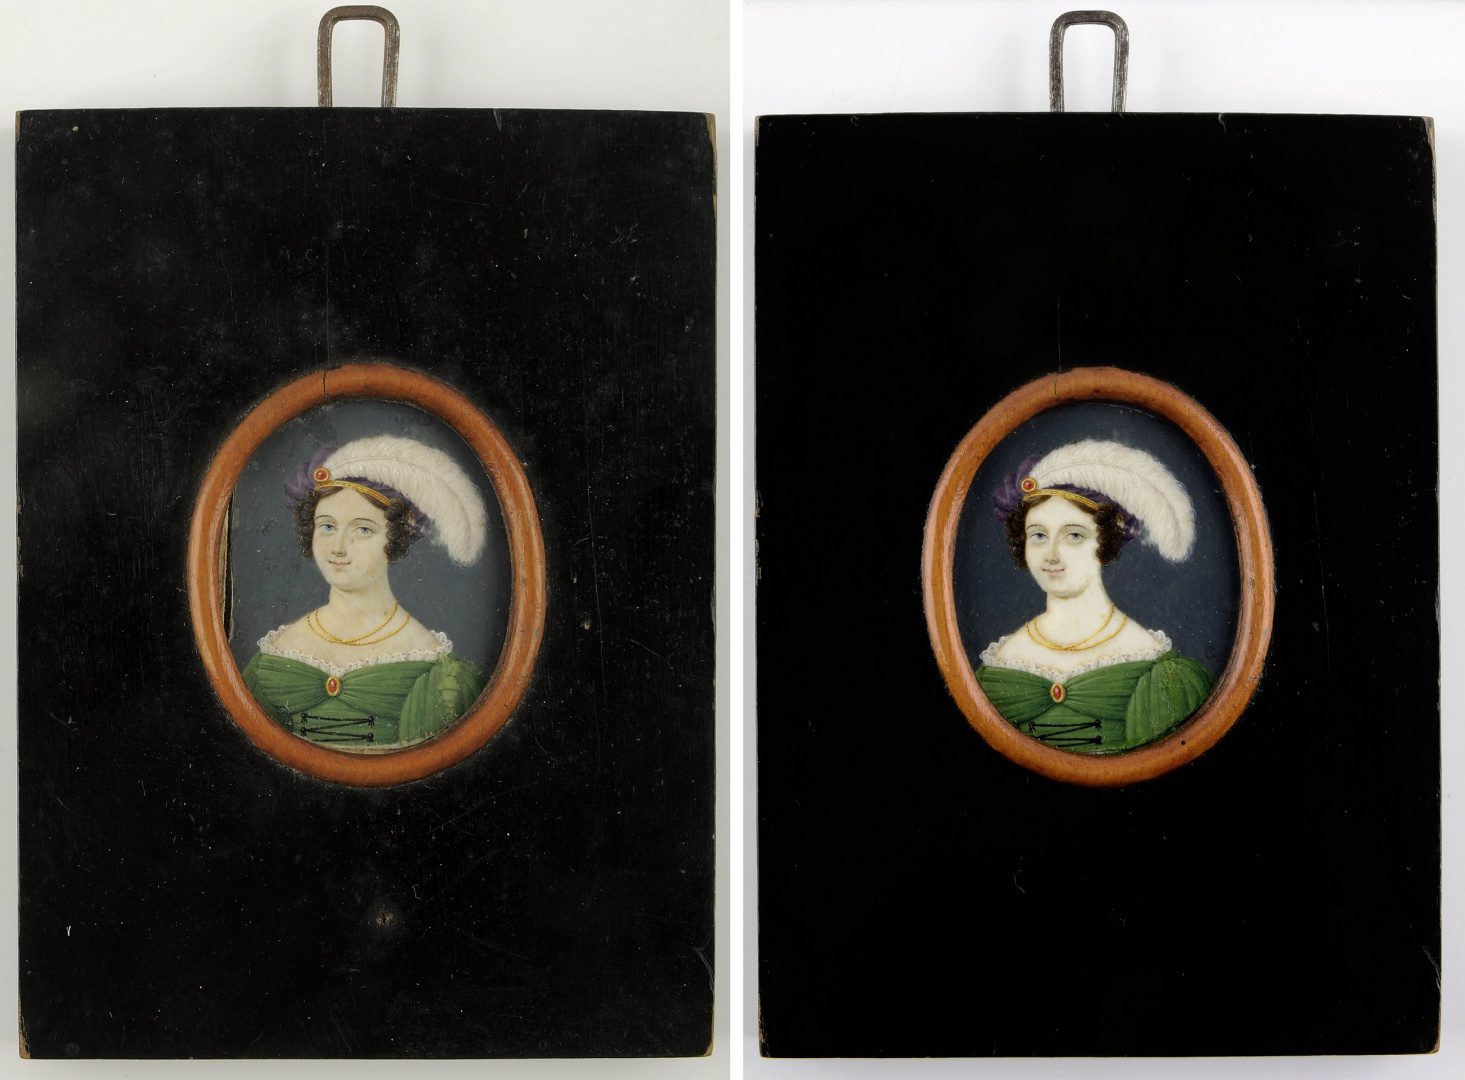 ill 4. The original shape and design of the frame of Sara Magdalena Paetzen's portrait were used as a model for making frames of the other miniatures.  The miniature before (on the left) and after conservation (on the right).